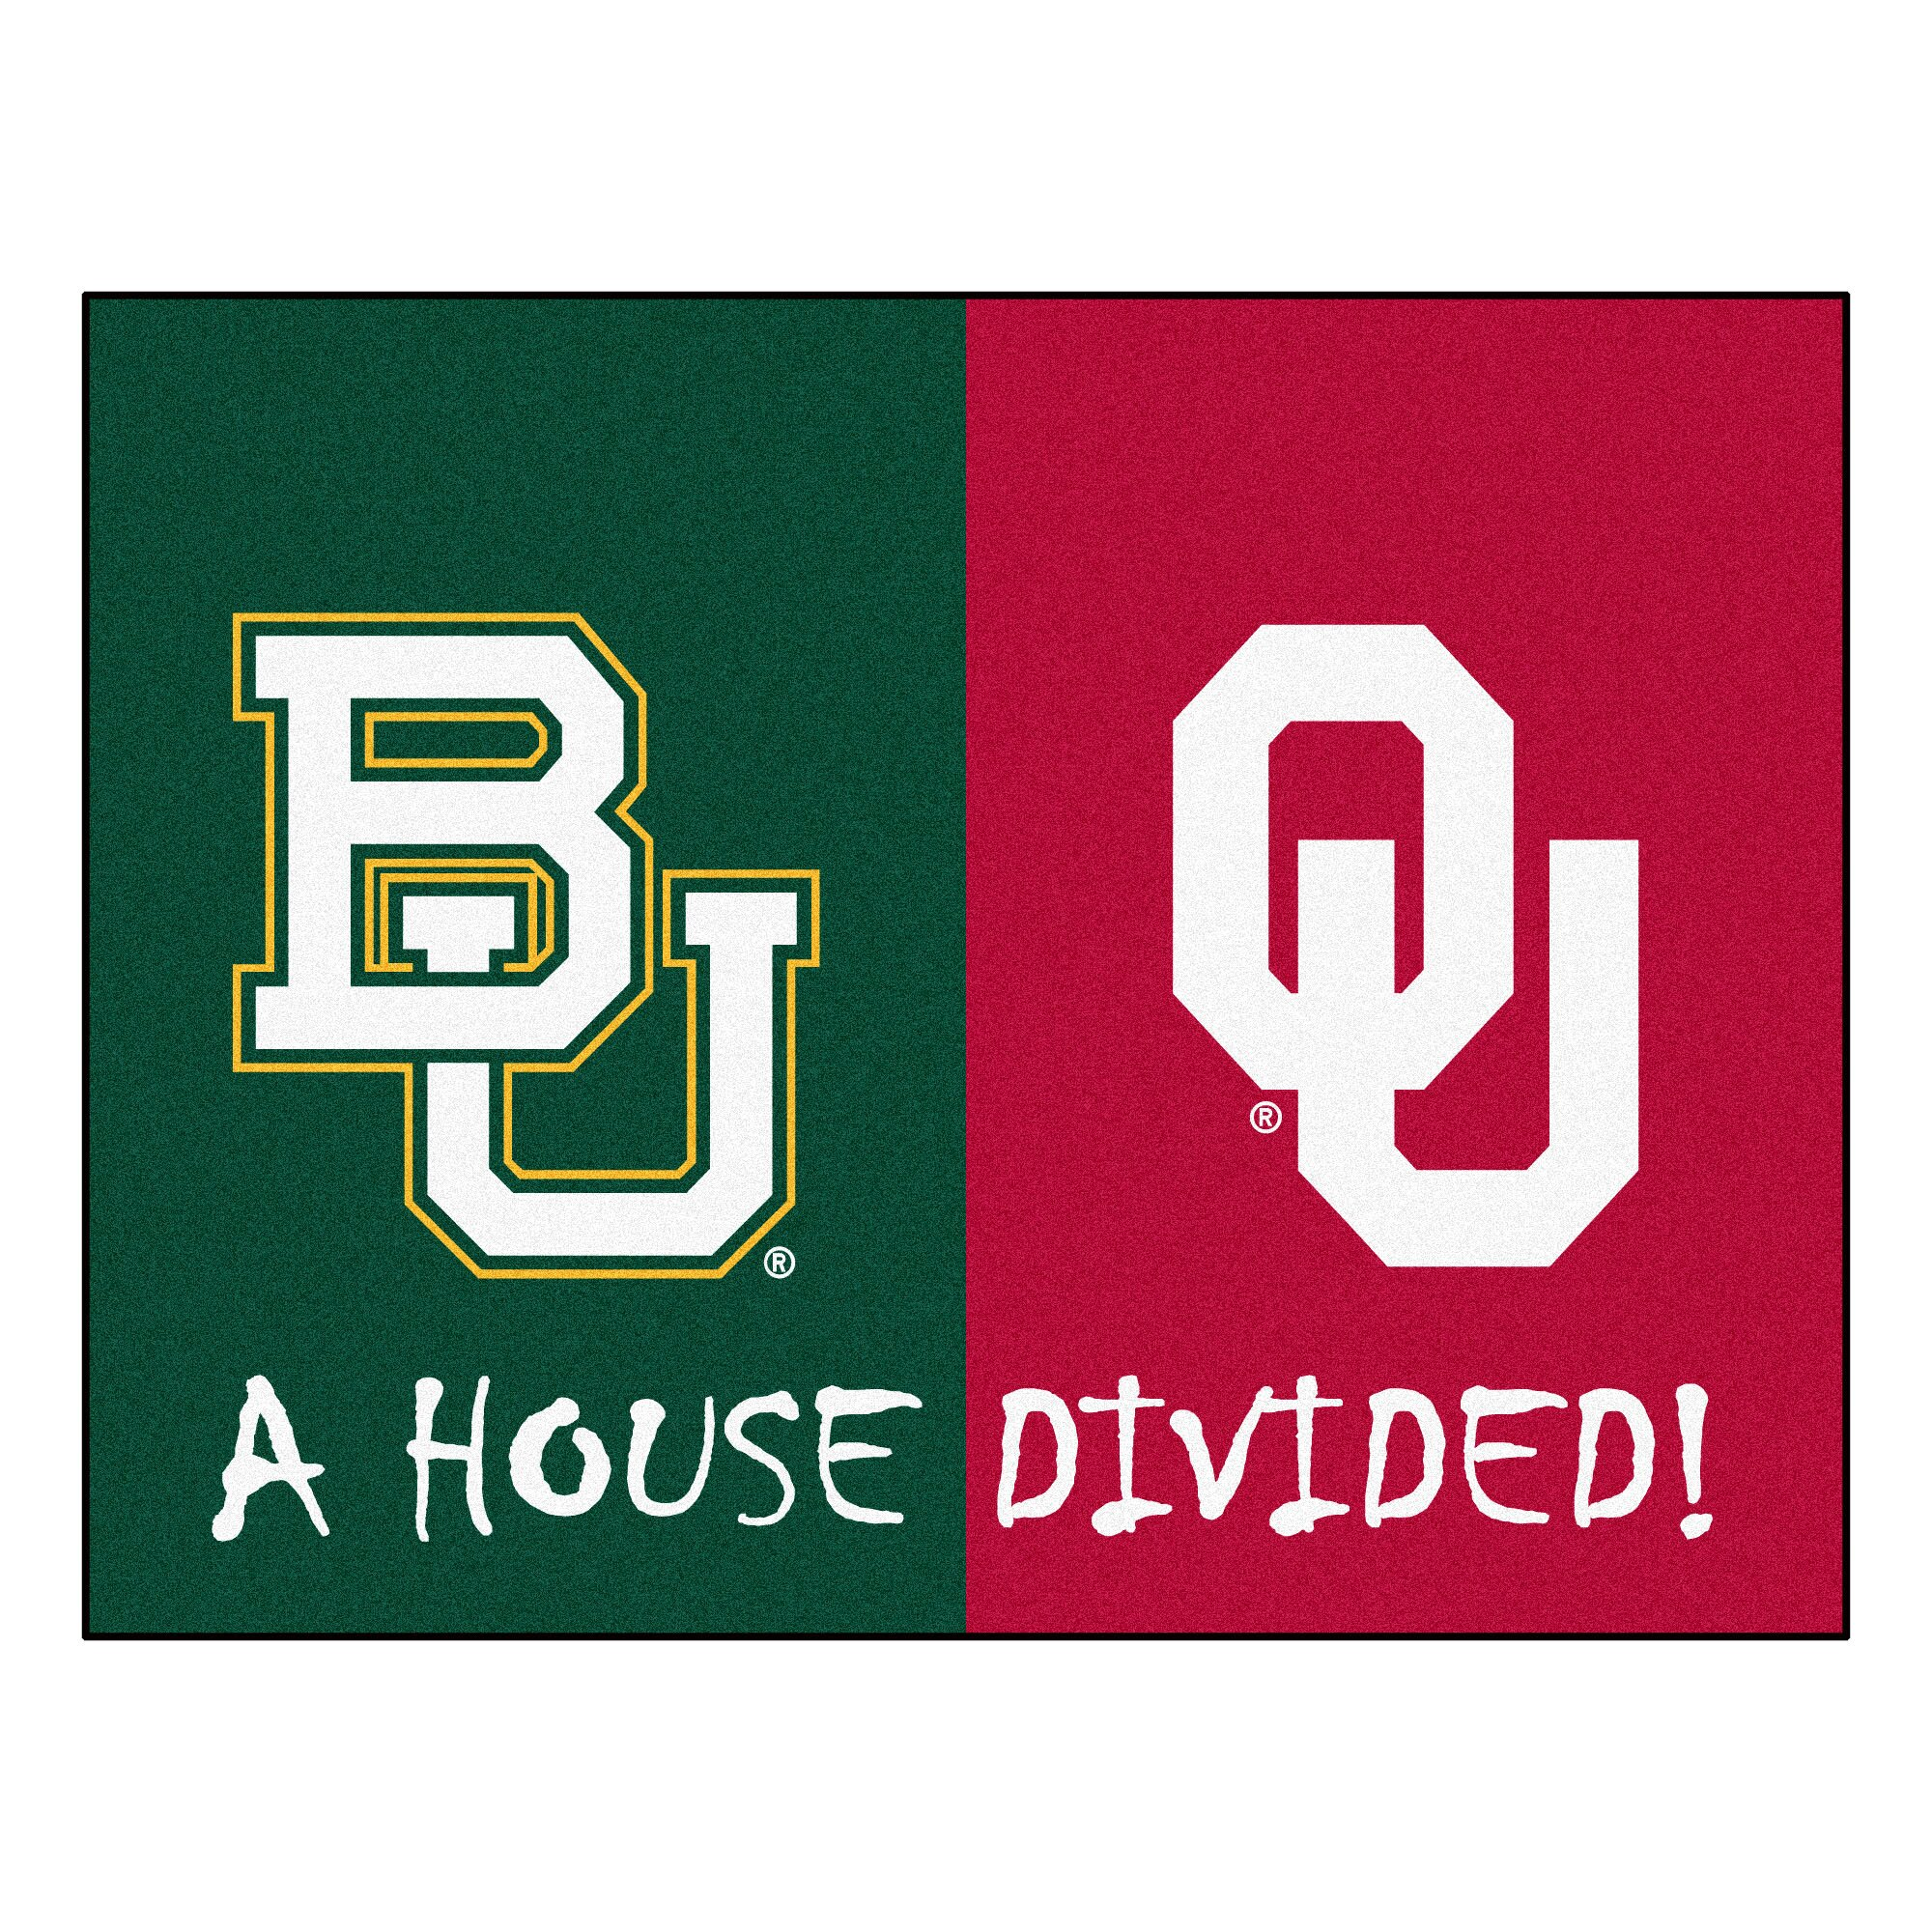 the house divided House divided & house united license plate, we make high quality license plates of your choice if you want to make more than one plate then please contact us and we will provide you with an invoice for all products on 1 transaction.